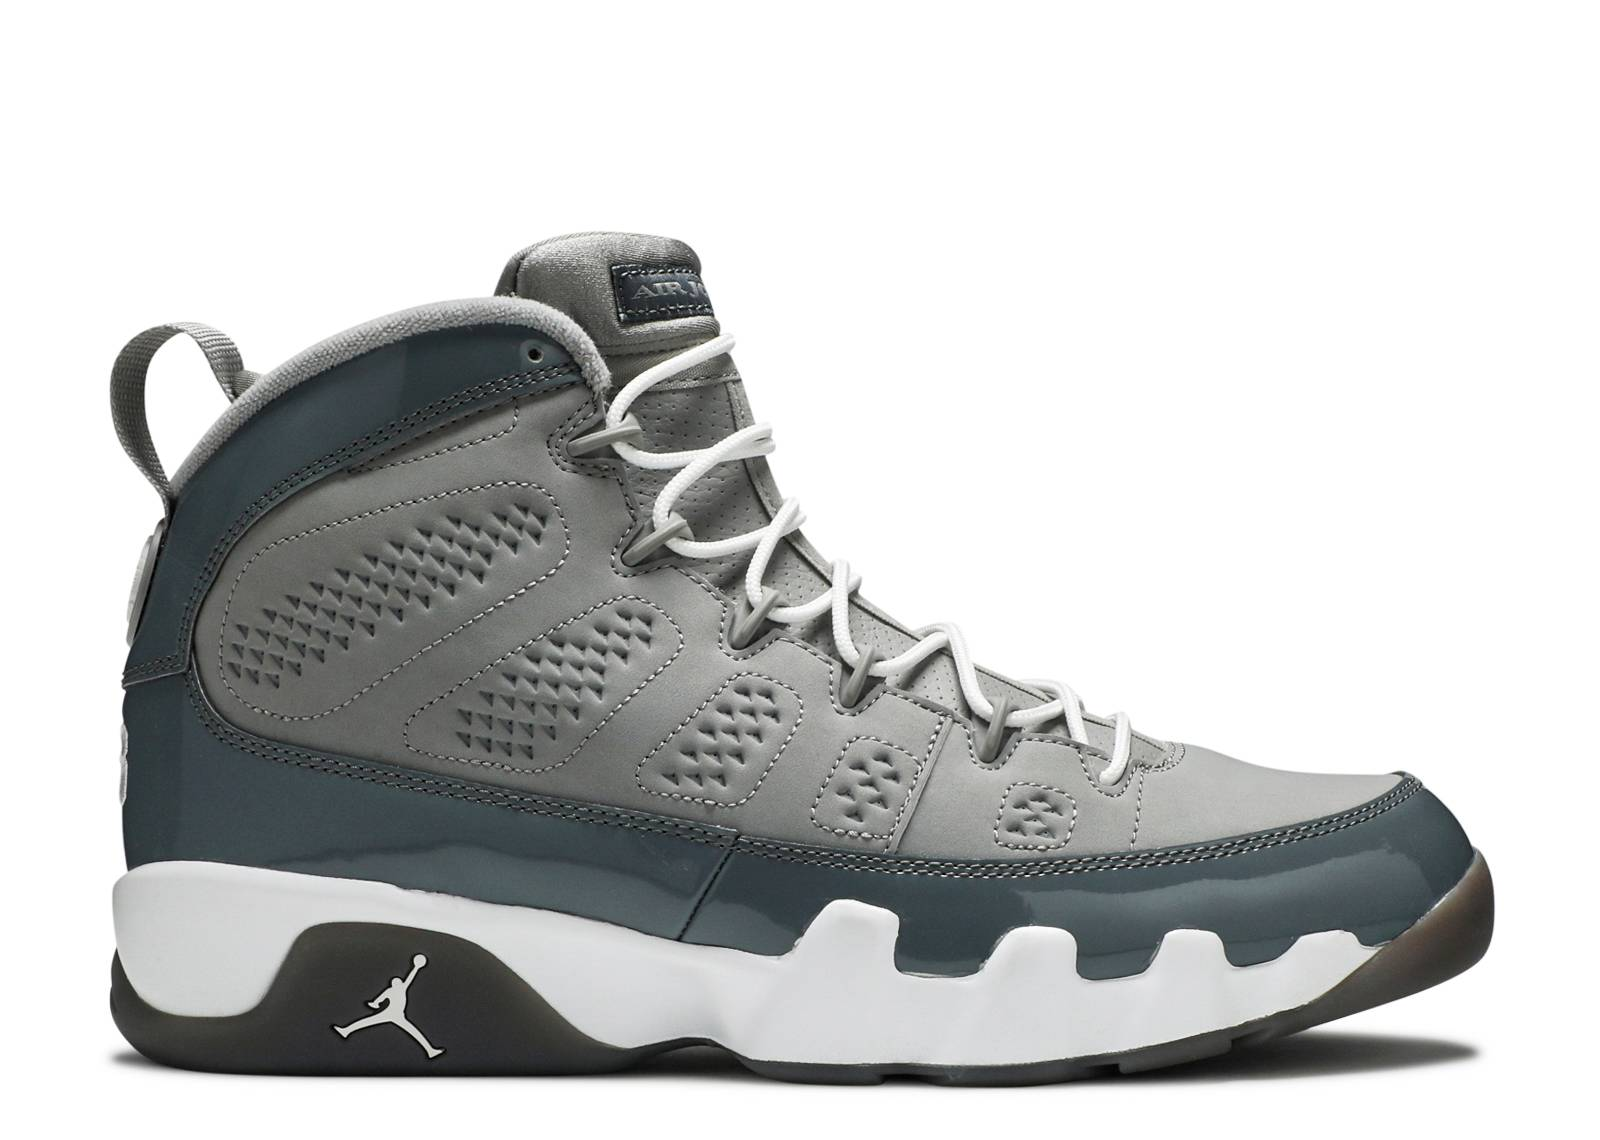 Nice Air Jordan 9 Gris Rétro Cool 2012 Version 2014 frais réduction abordable BdsbnxynXT